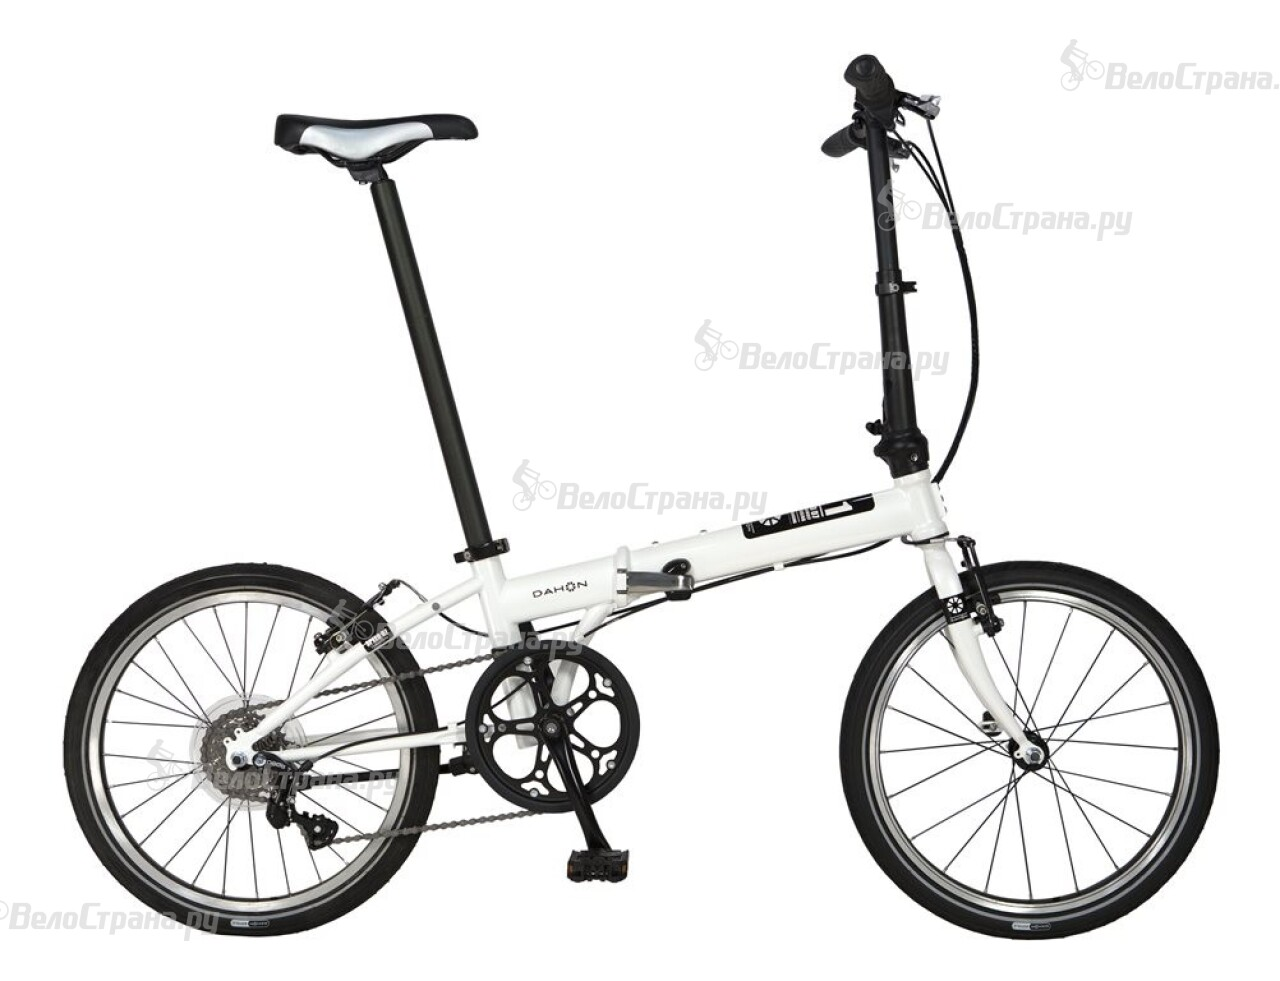 Велосипед Dahon Speed D7 (2014) right angle 1 4 mono guitar effect pedal board cable patch cord 25cm